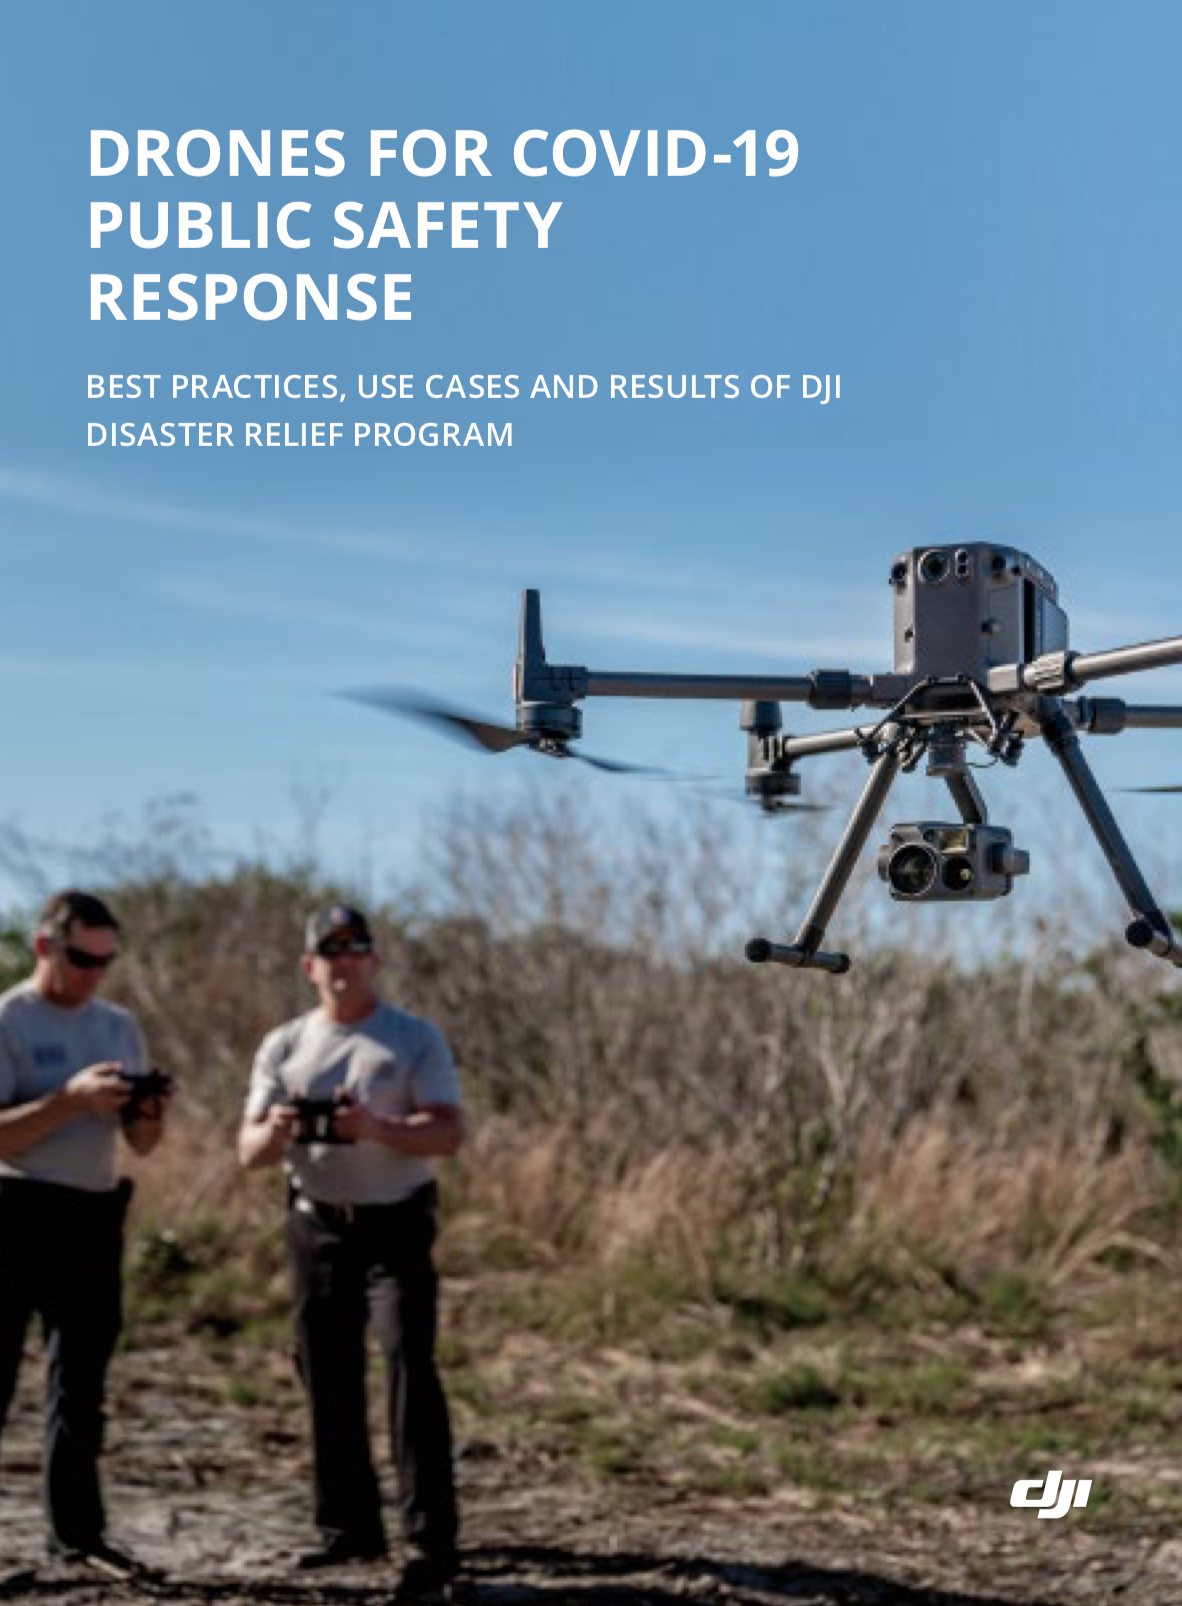 DJI public safety COVID-19 guide